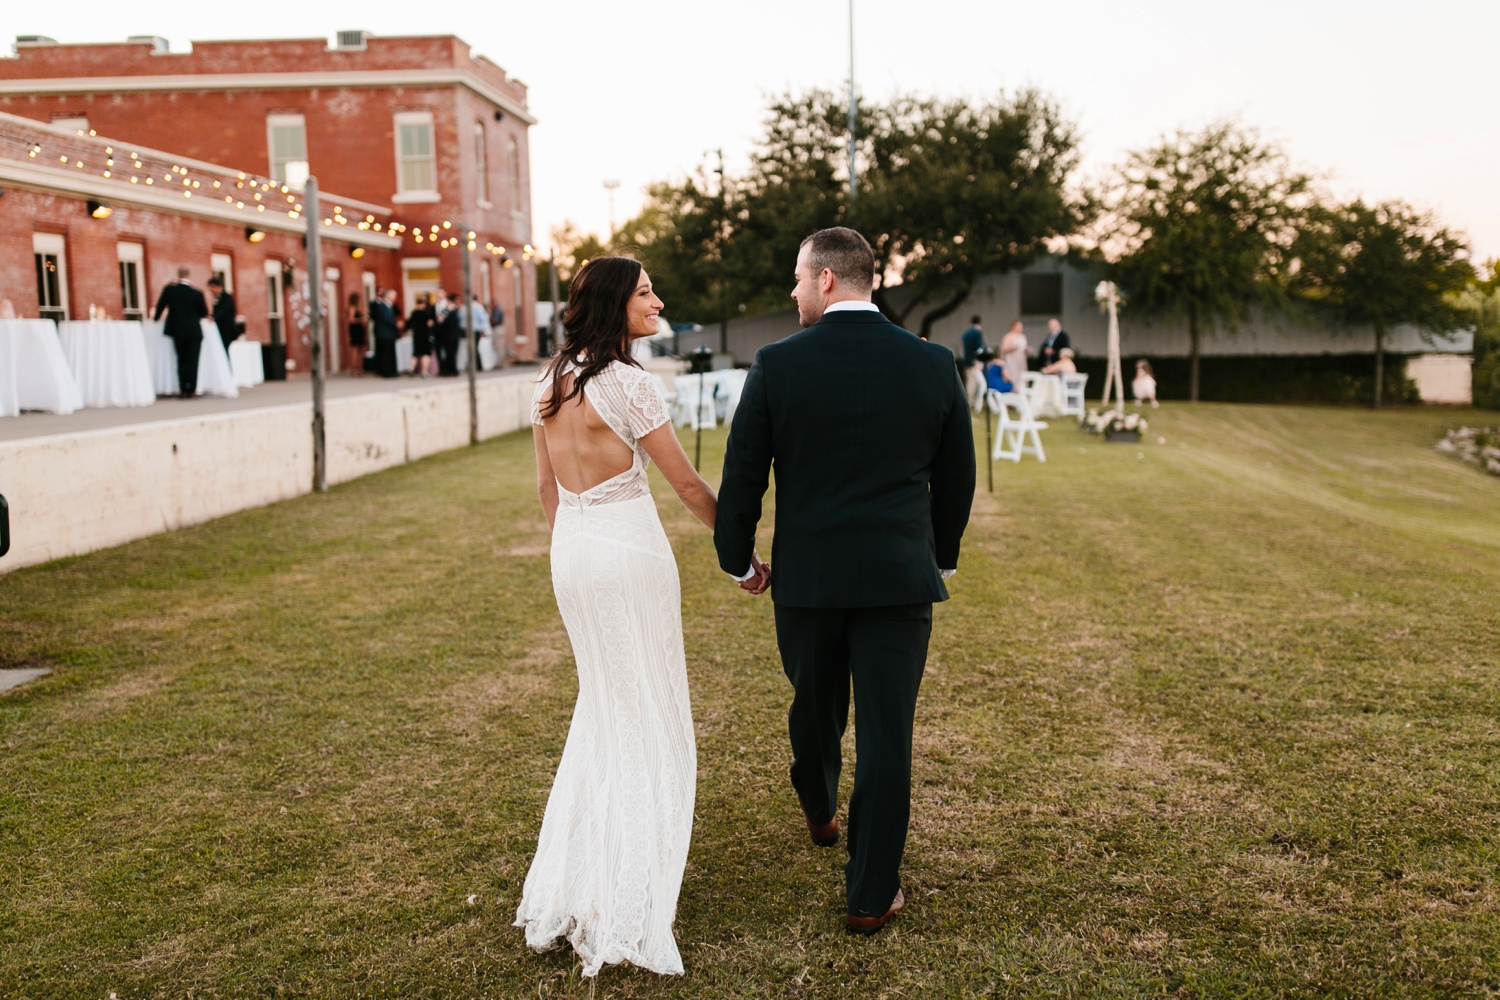 Kadee + Tyler | a raw, emotional wedding at the Filter Building on White Rock Lake in Dallas, TX by North Texas Wedding Photographer, Rachel Meagan Photography 190